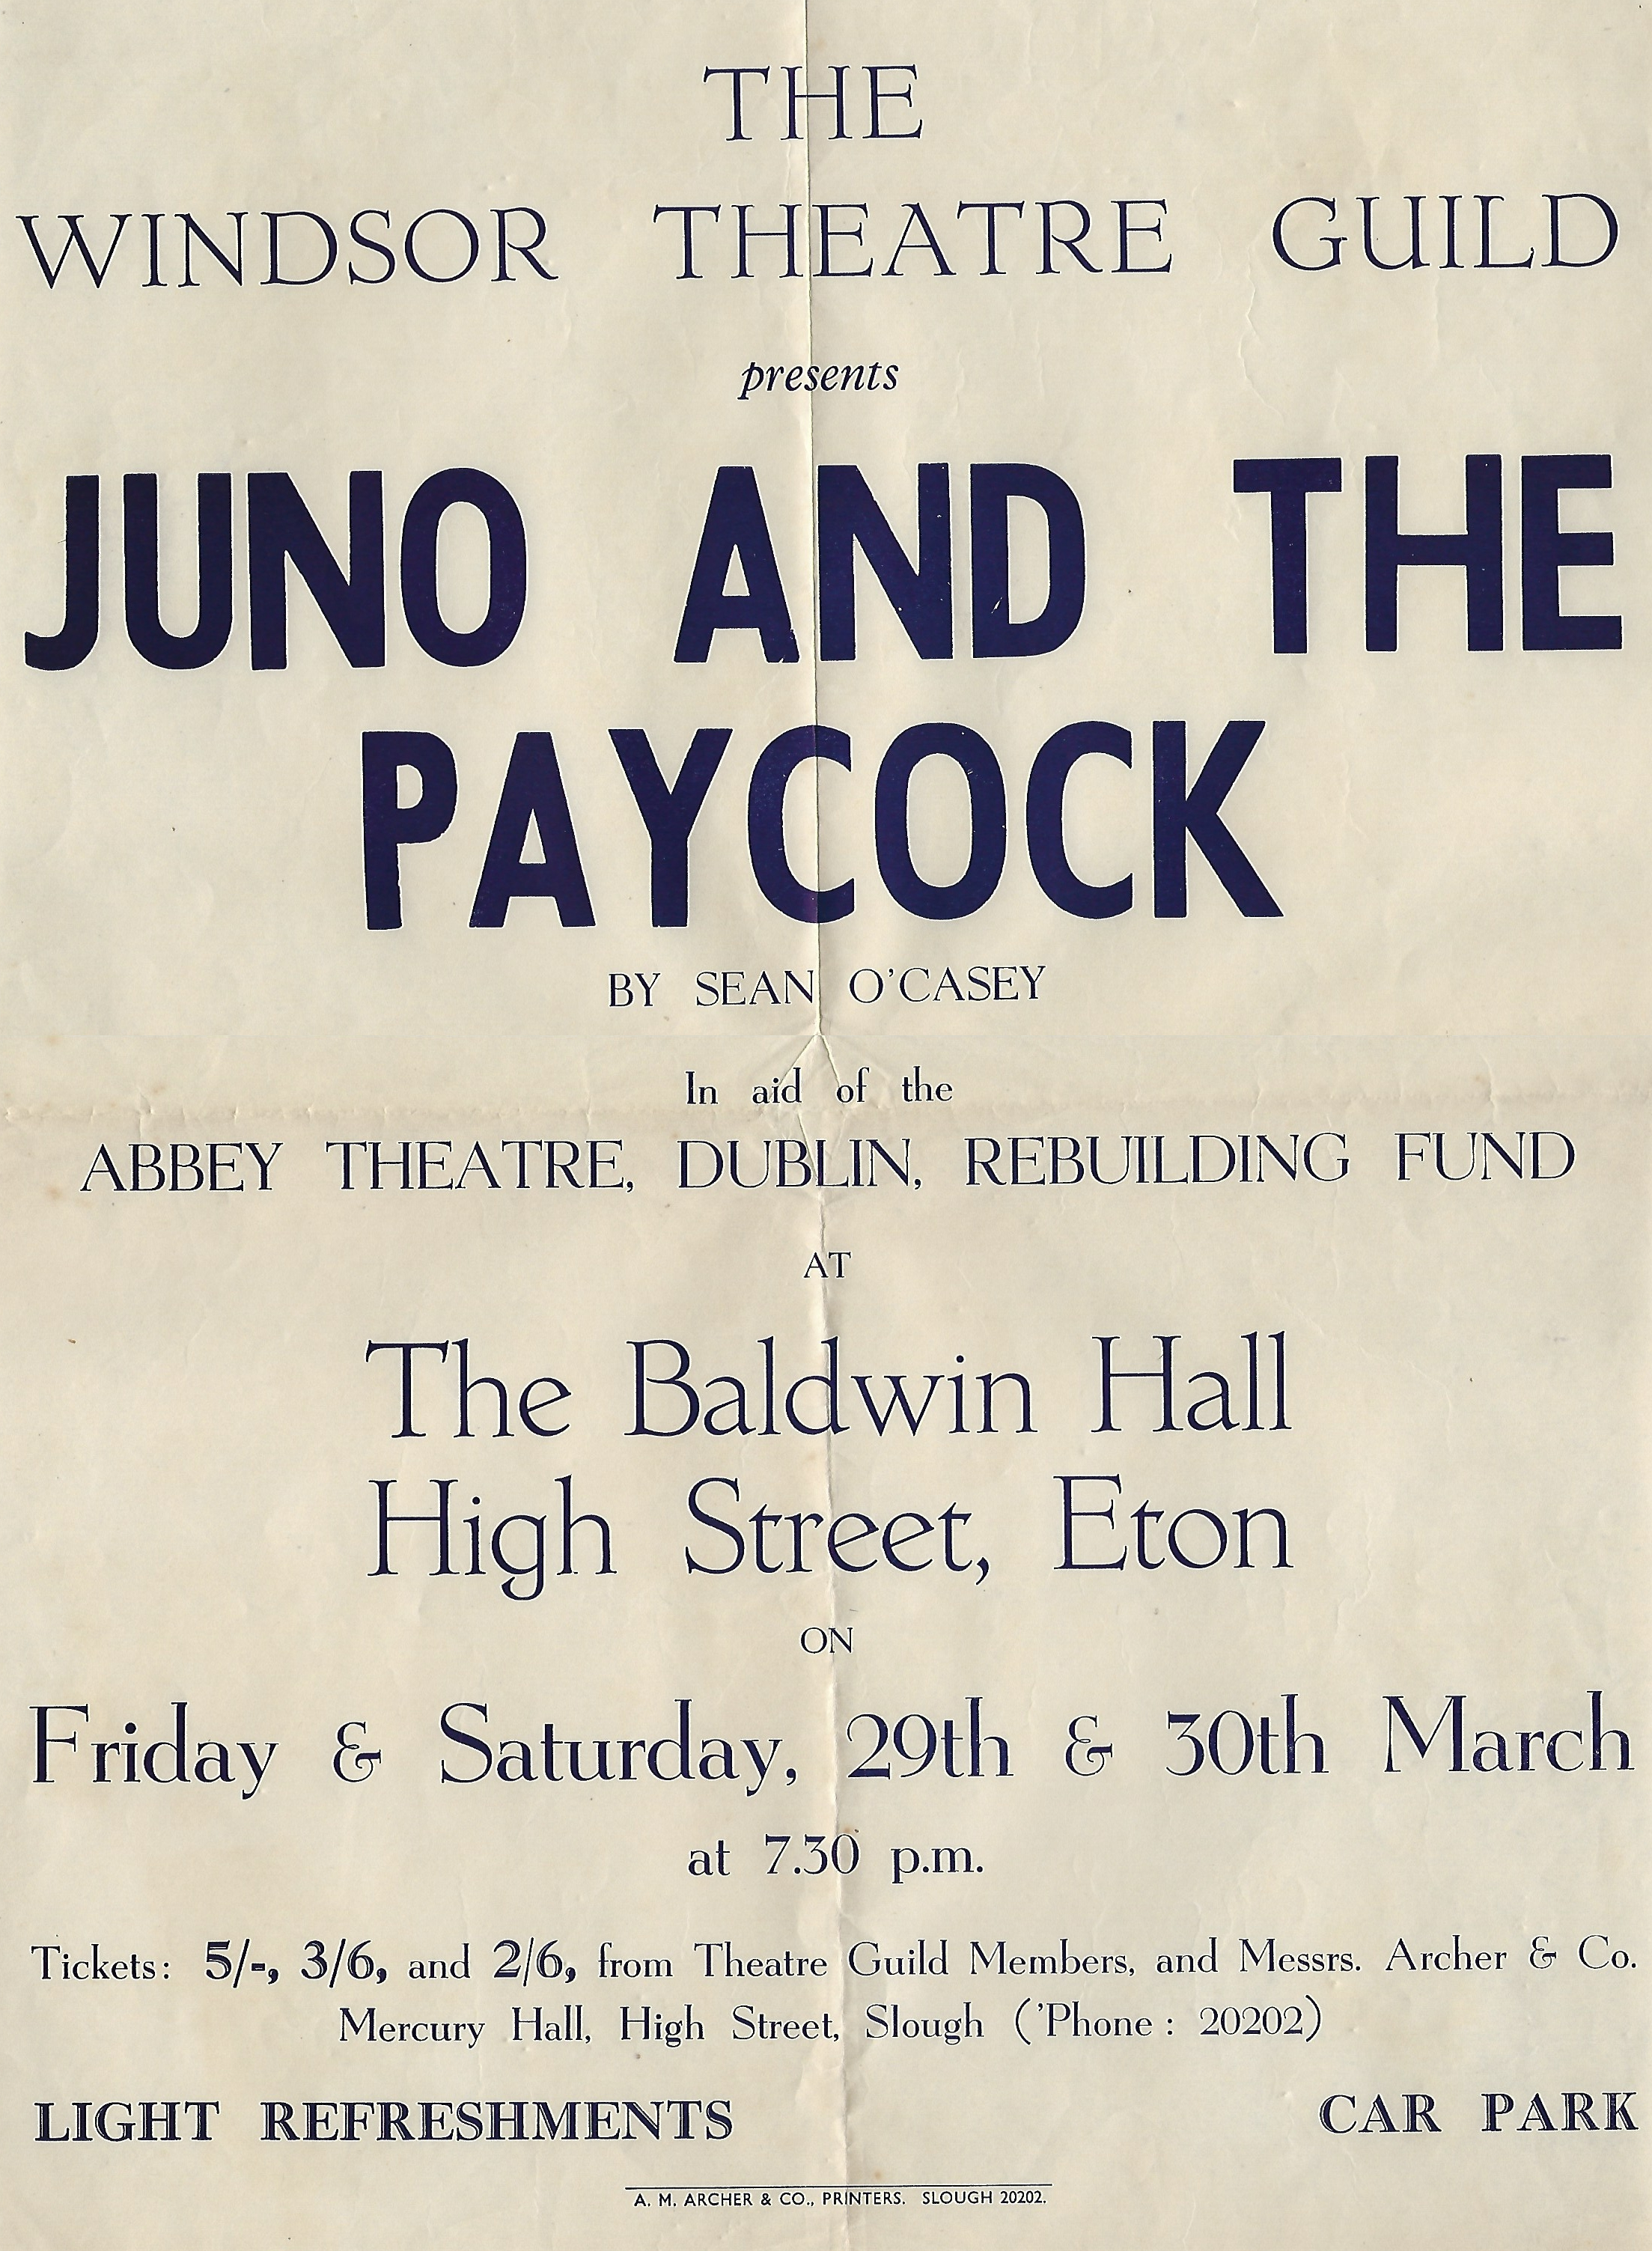 an analysis of a directors production plan for juno and the paycock by sean ocasey